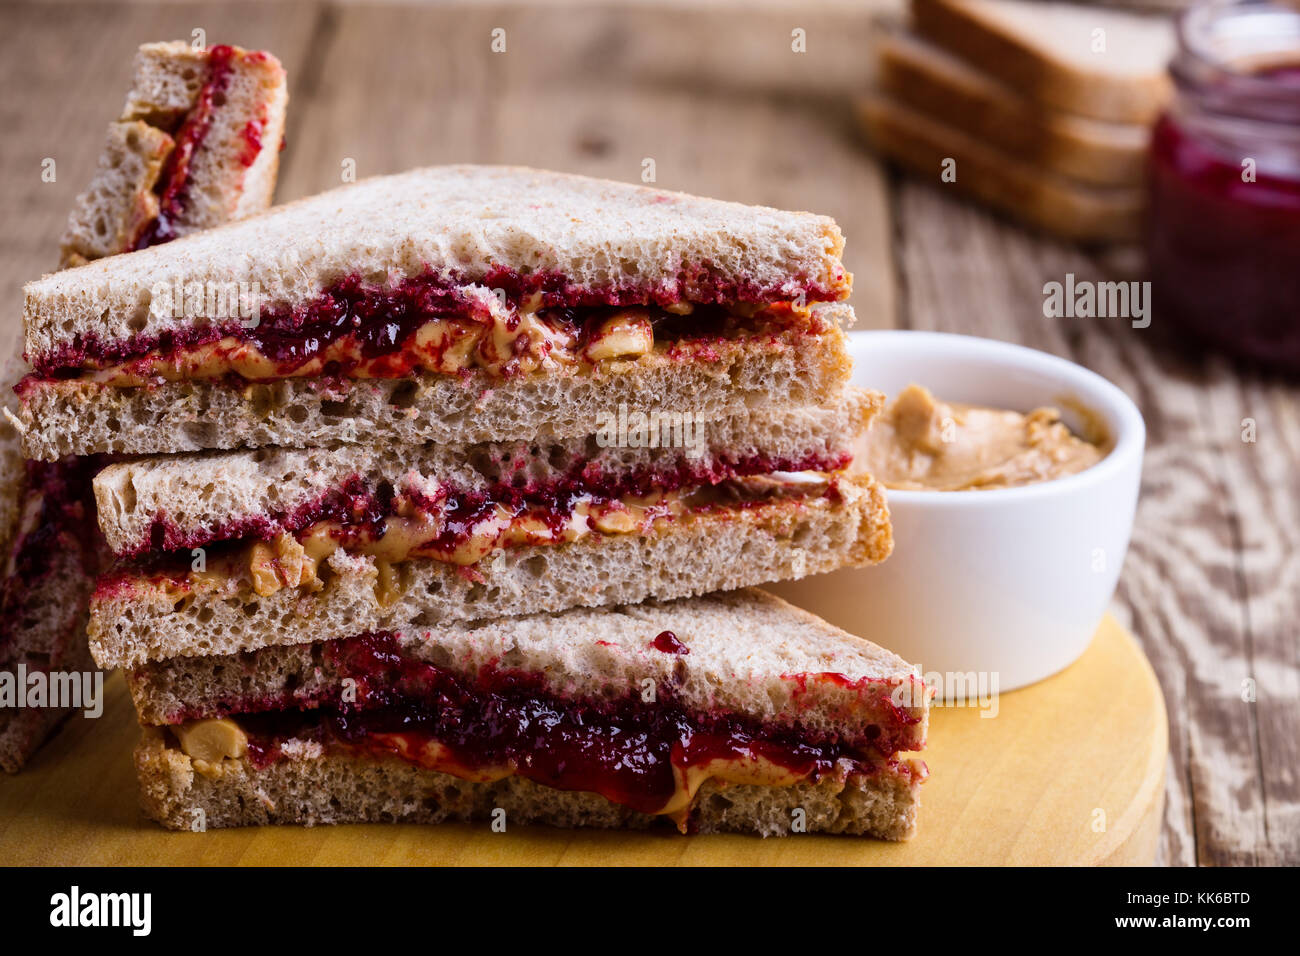 Peanut butter and jelly sandwich with whole wheat bread on rustic wooden table - Stock Image